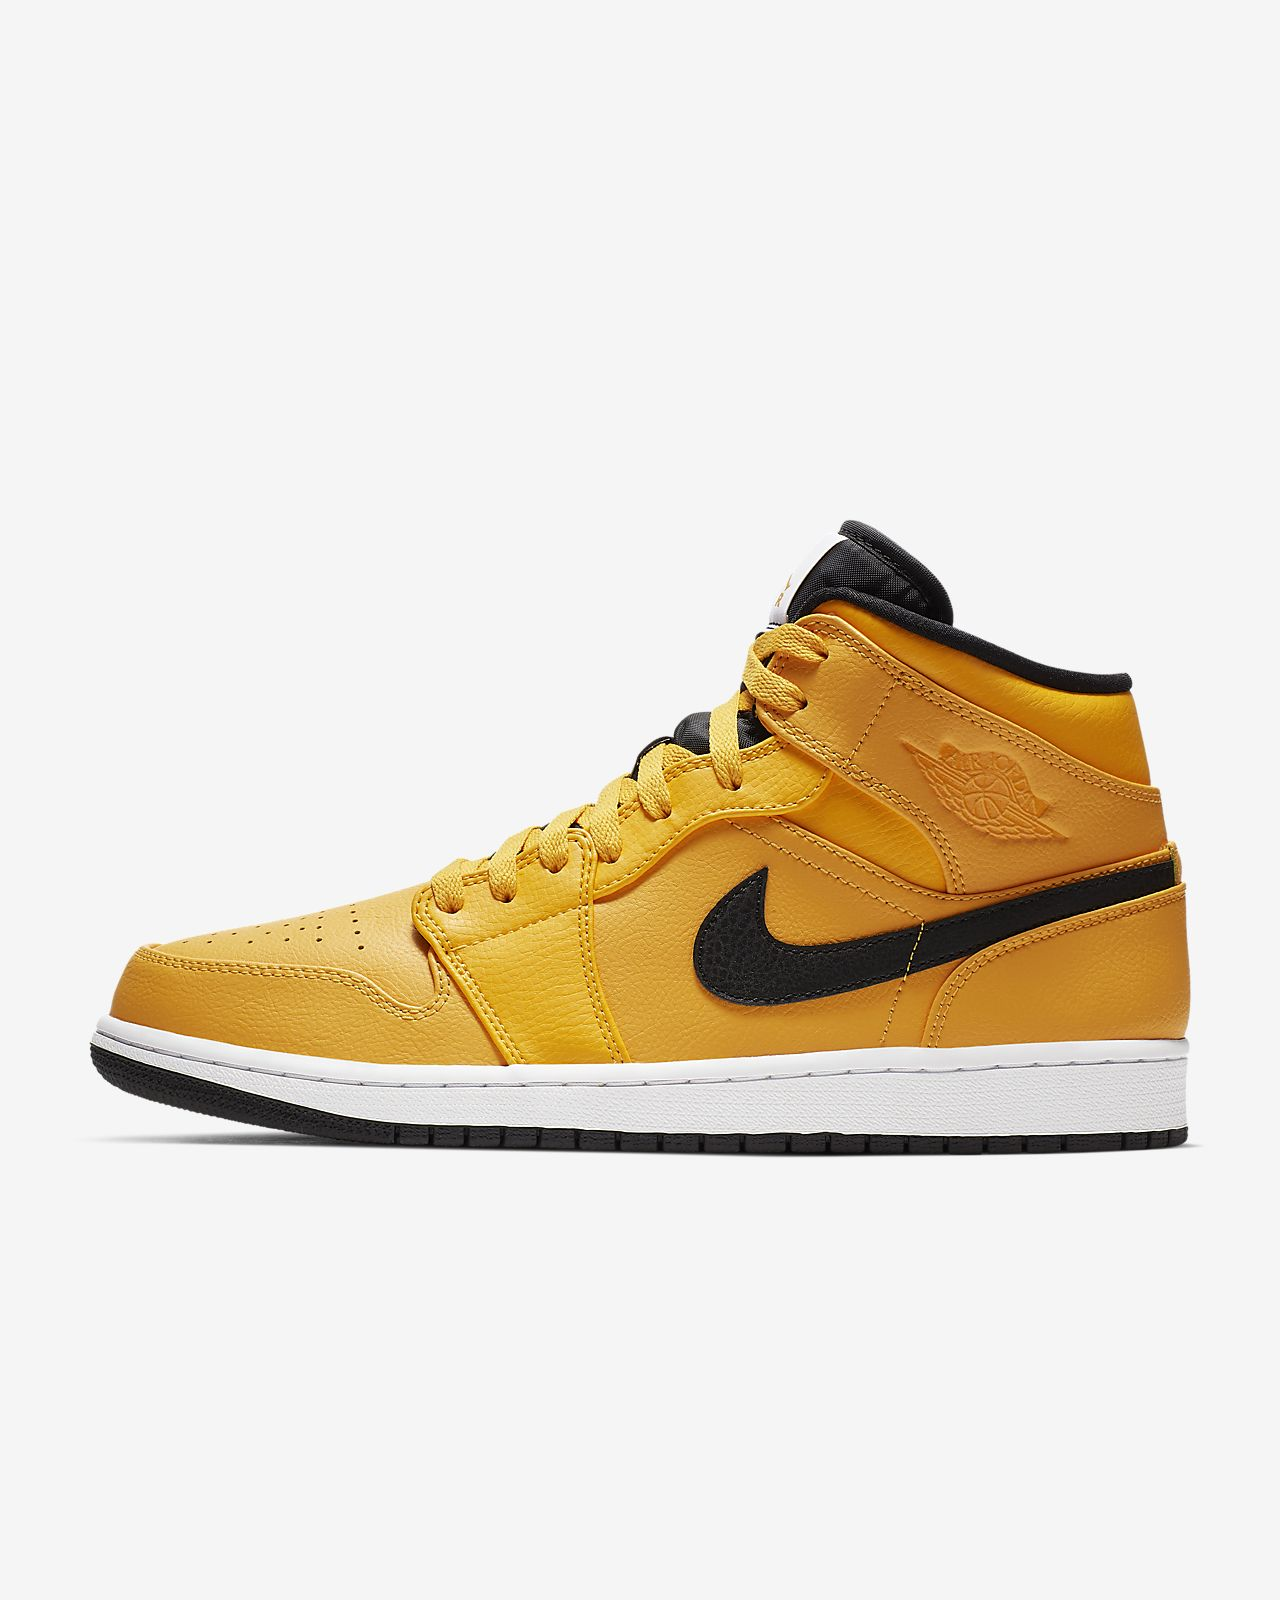 69f4a0d31f4aad Air Jordan 1 Mid Men s Shoe. Nike.com